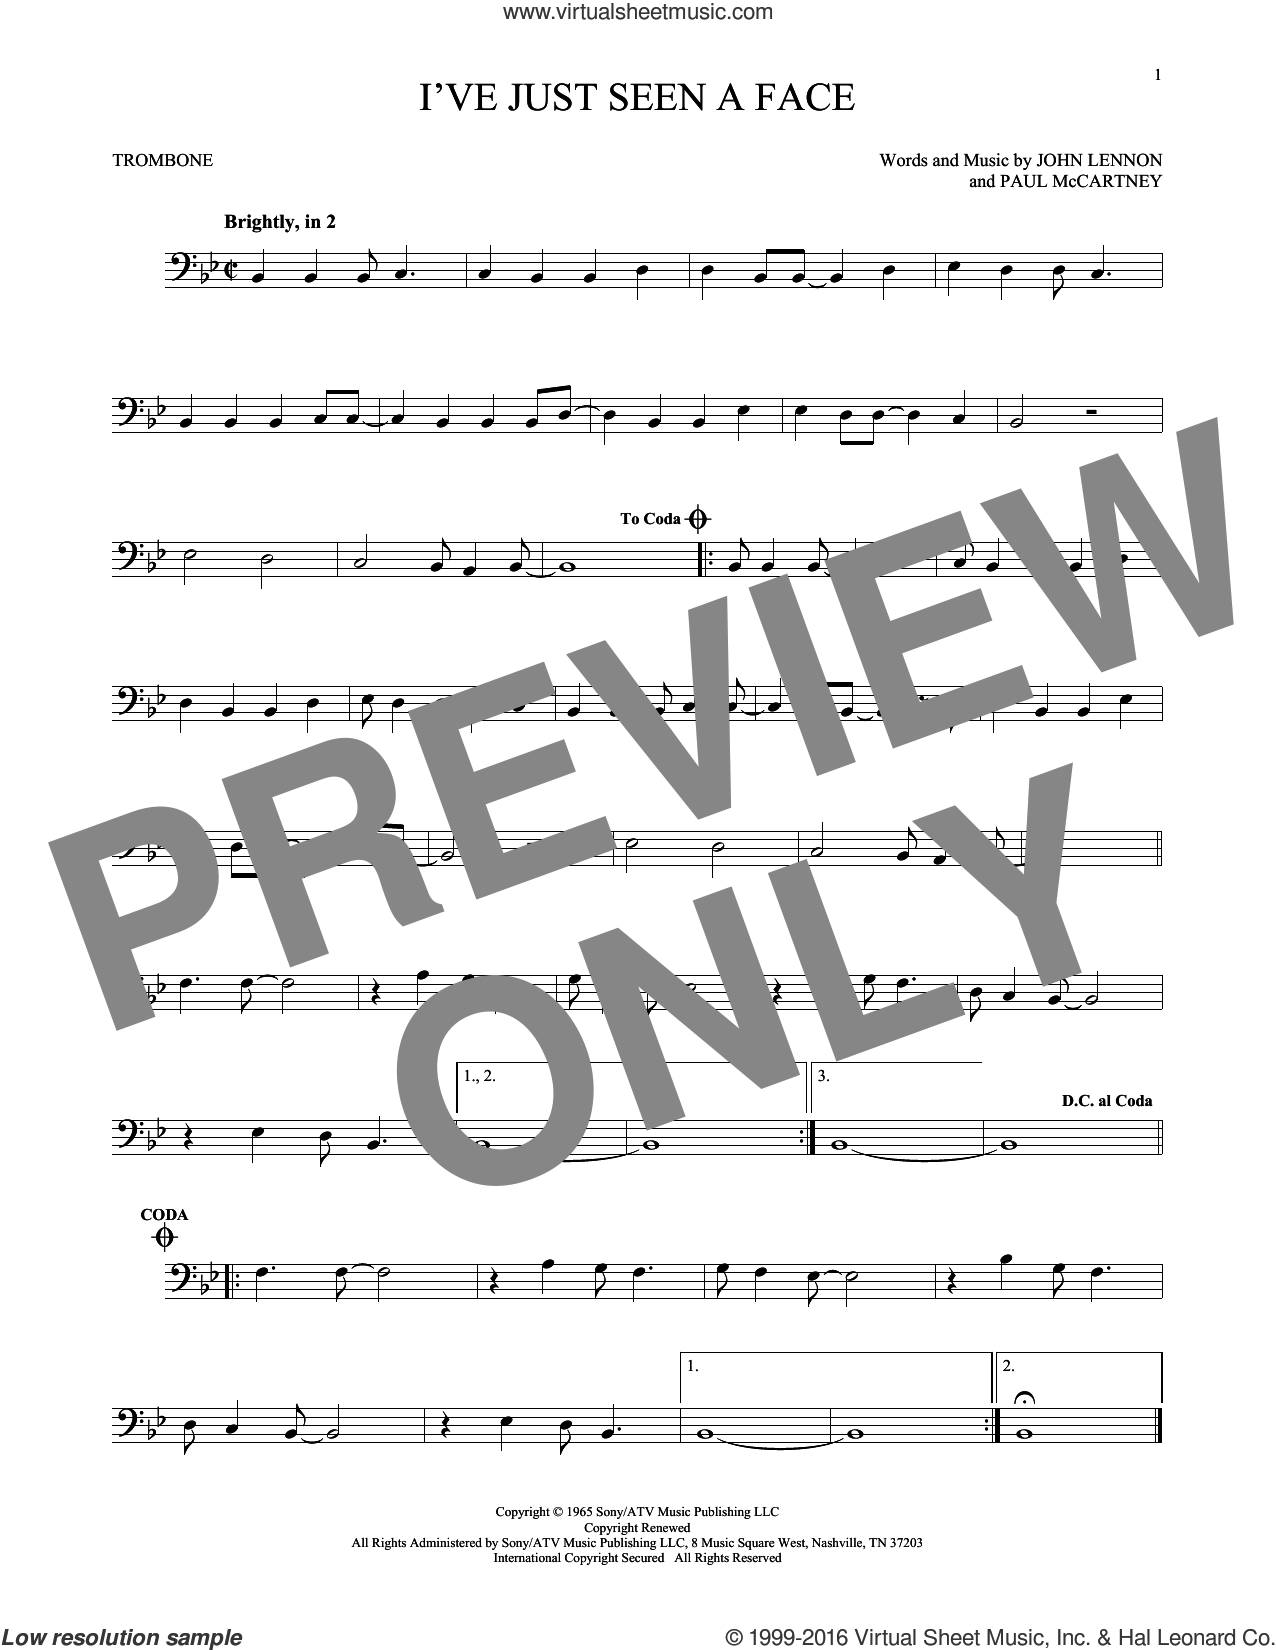 I've Just Seen A Face sheet music for trombone solo by The Beatles, John Lennon and Paul McCartney, intermediate trombone. Score Image Preview.